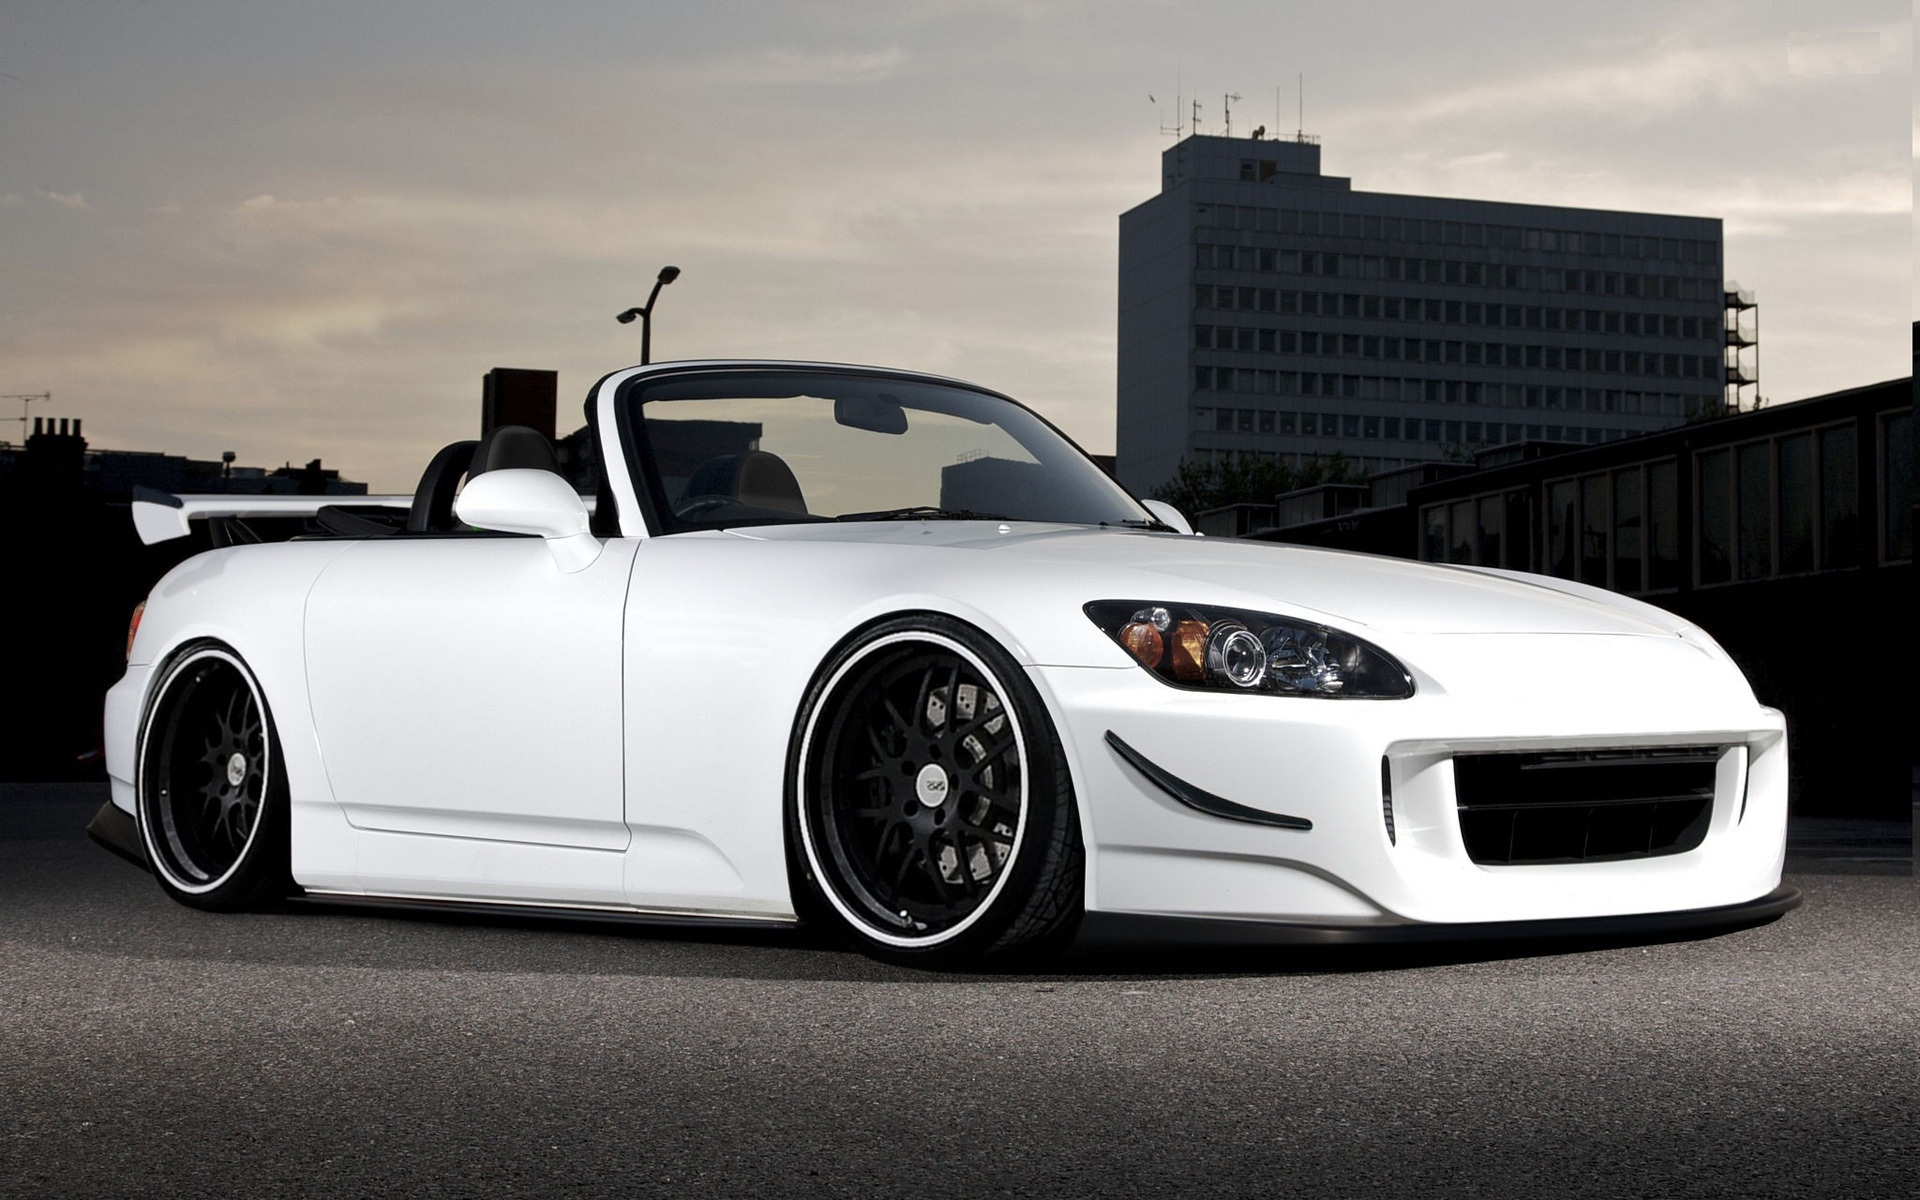 Bmw Z4 Vs Honda S2000 Vs Bmw 3 20cabrio